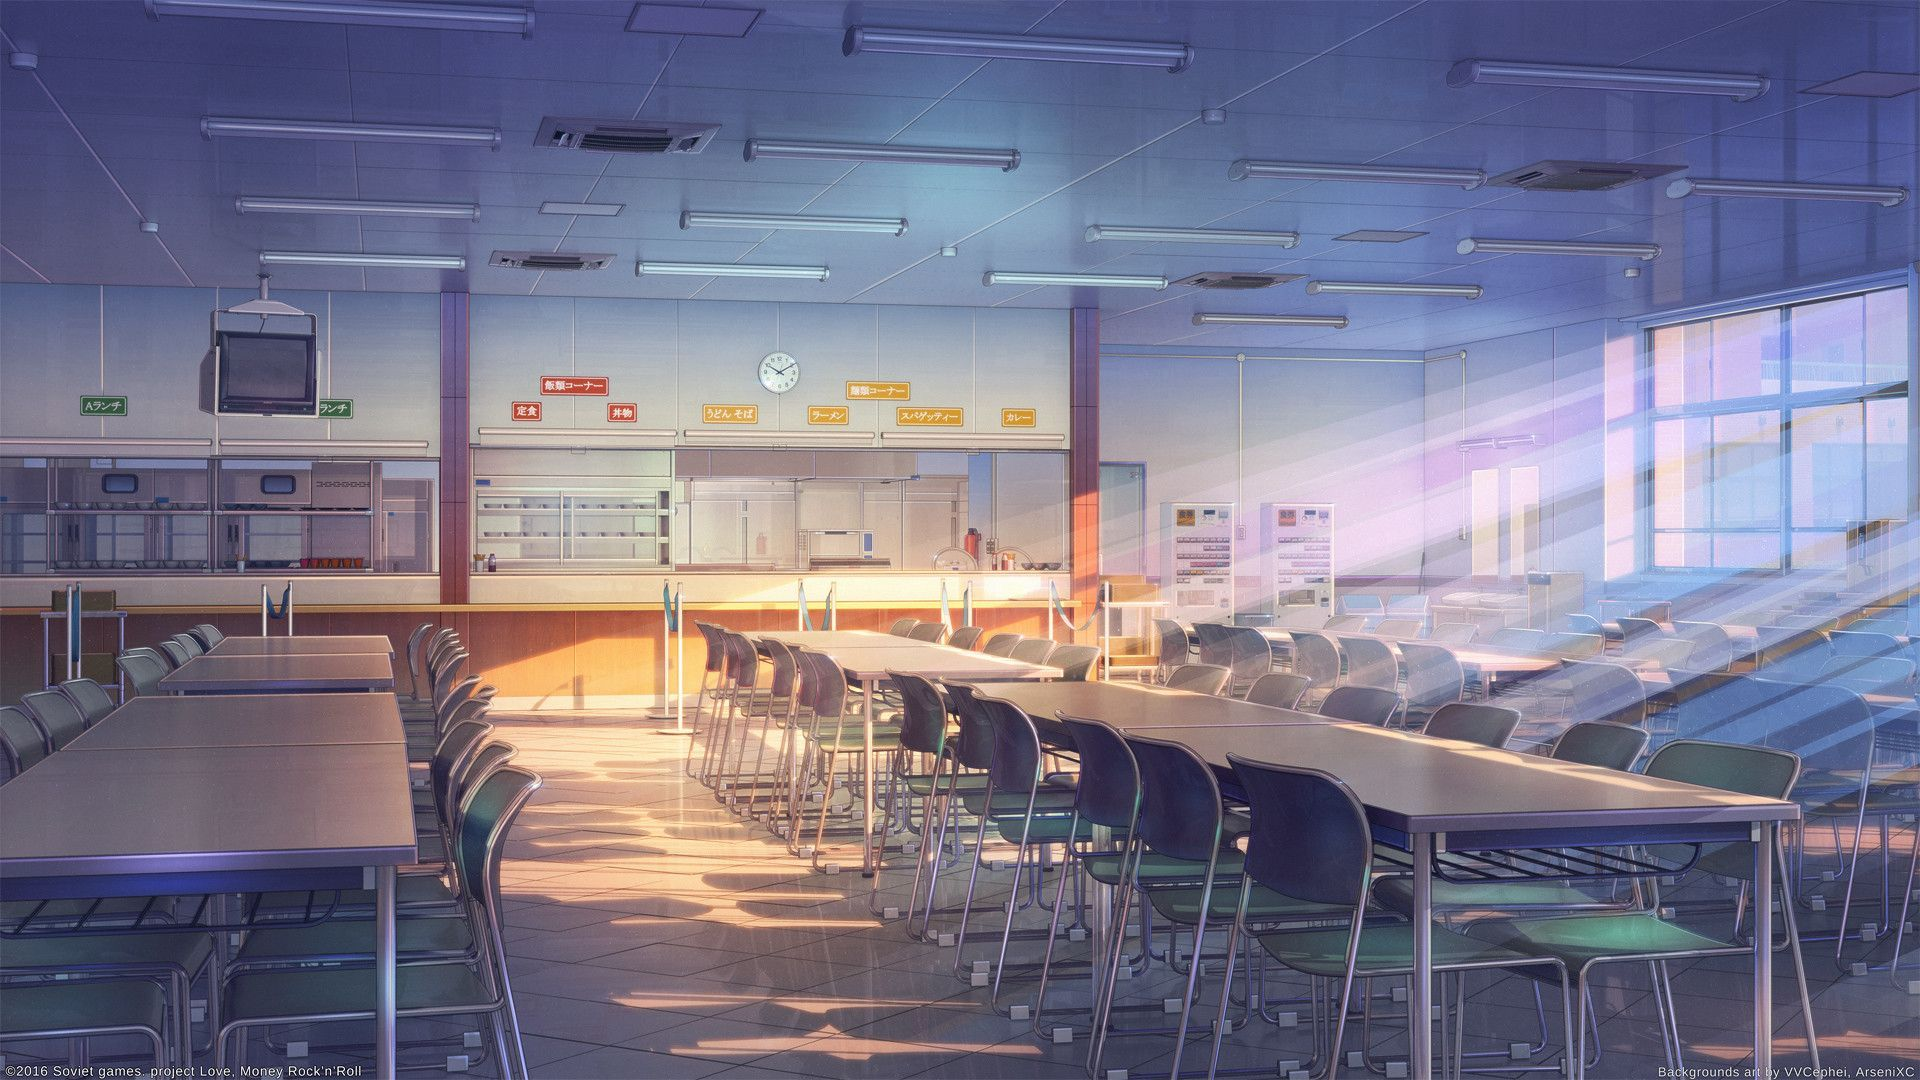 X School Anime Scenery Background Wallpaper